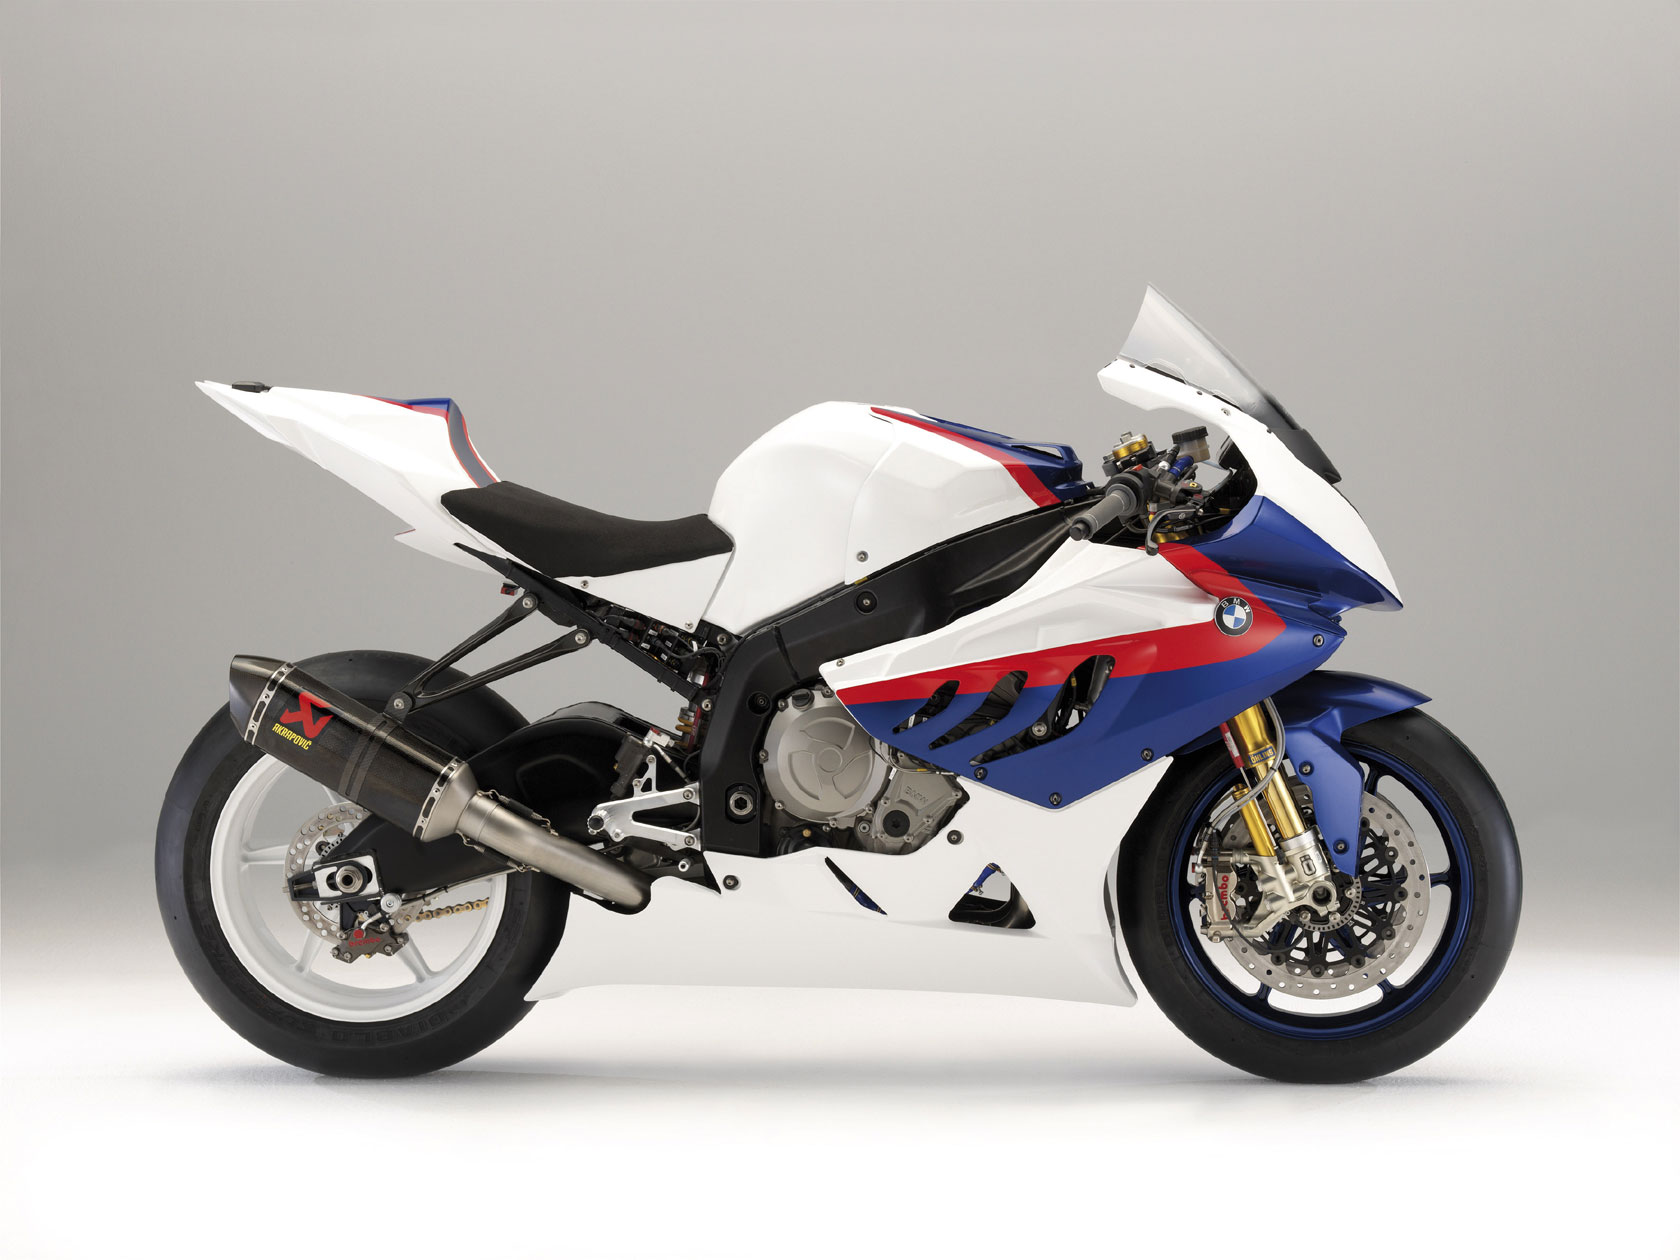 BMW S 1000 RR ABS 2010 images #8981